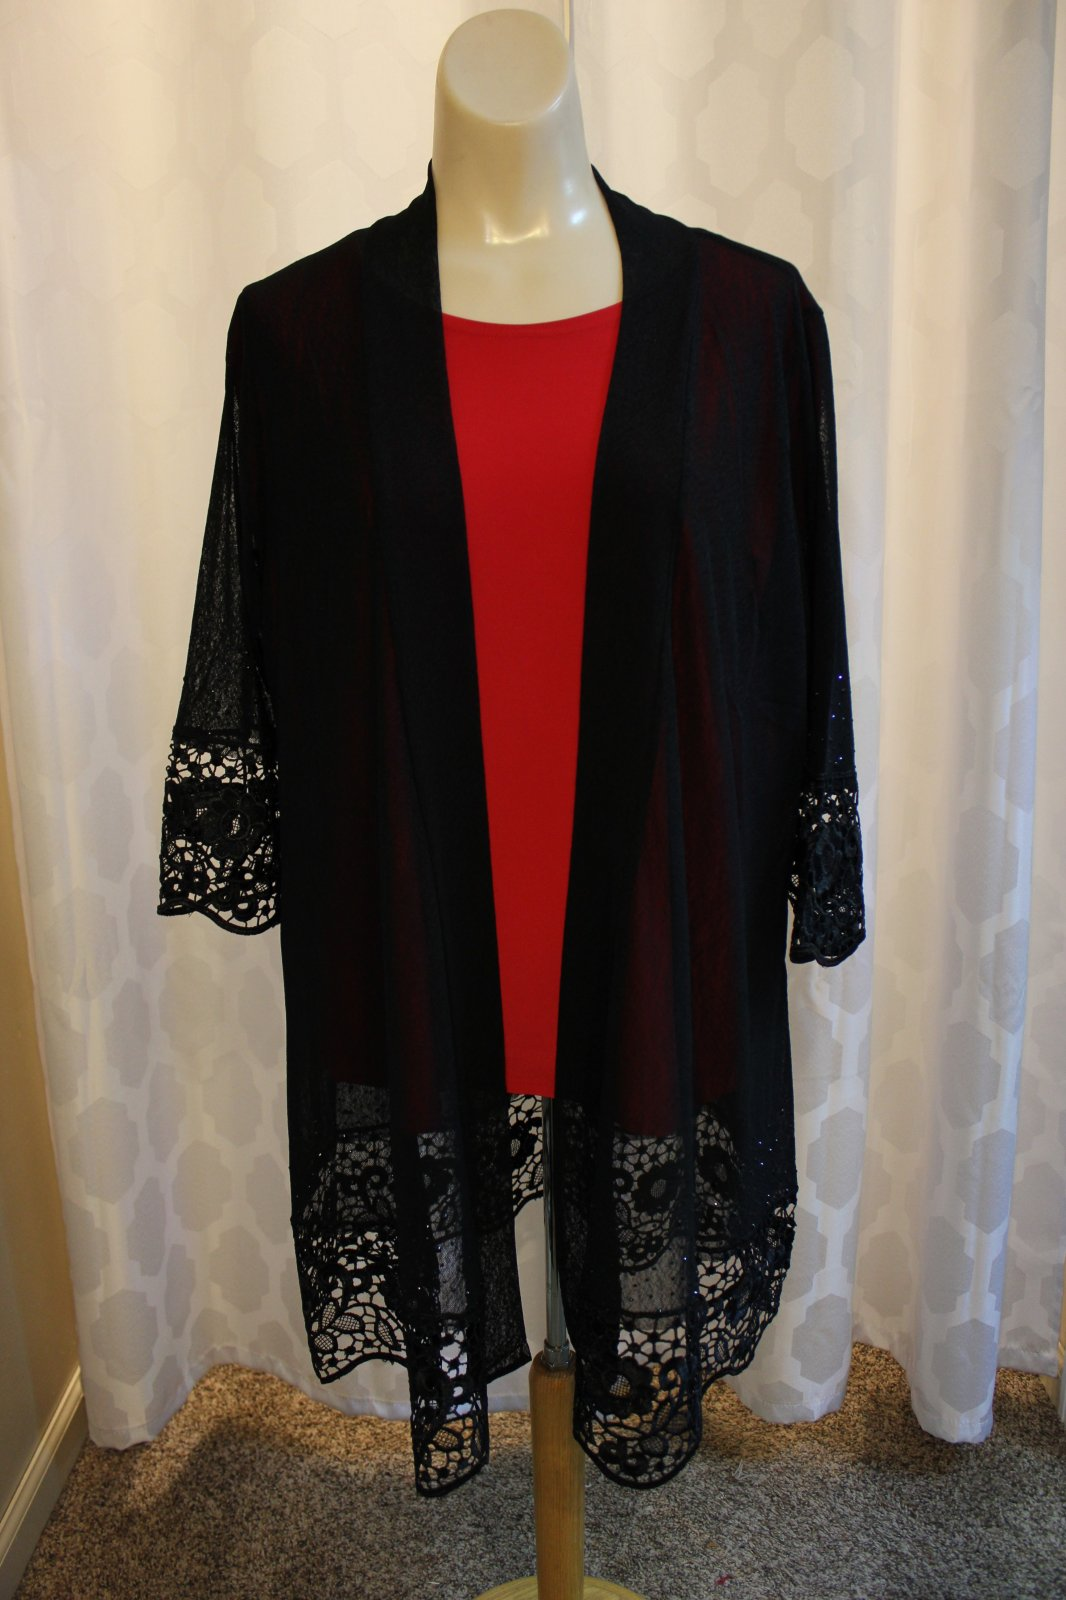 Black Sheer Cardigan w/lace 1 Size